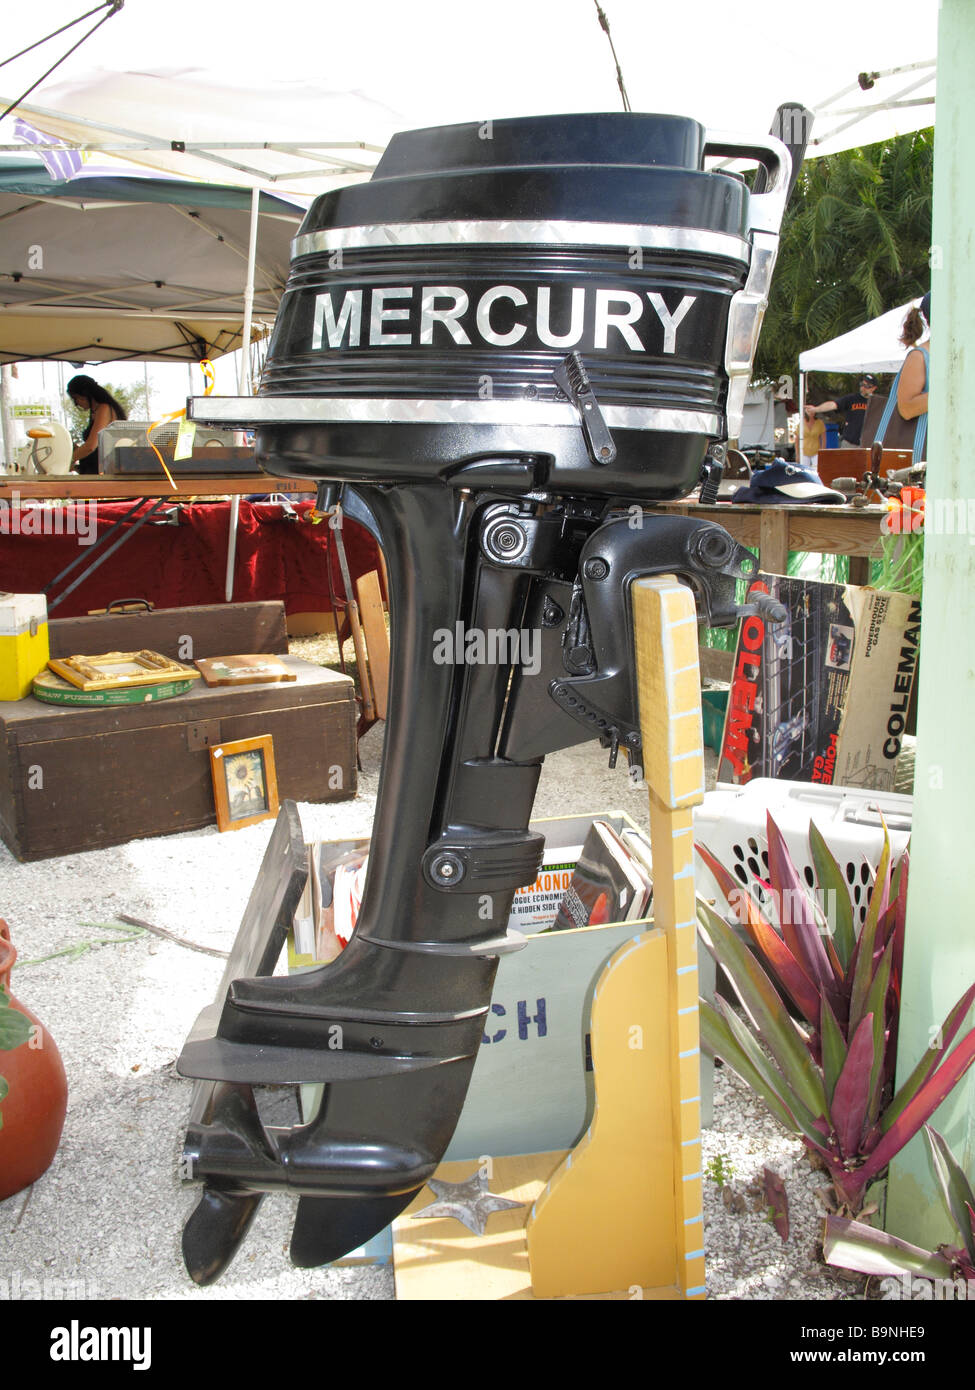 Mercury Outboard Stock Photos & Mercury Outboard Stock Images - Alamy